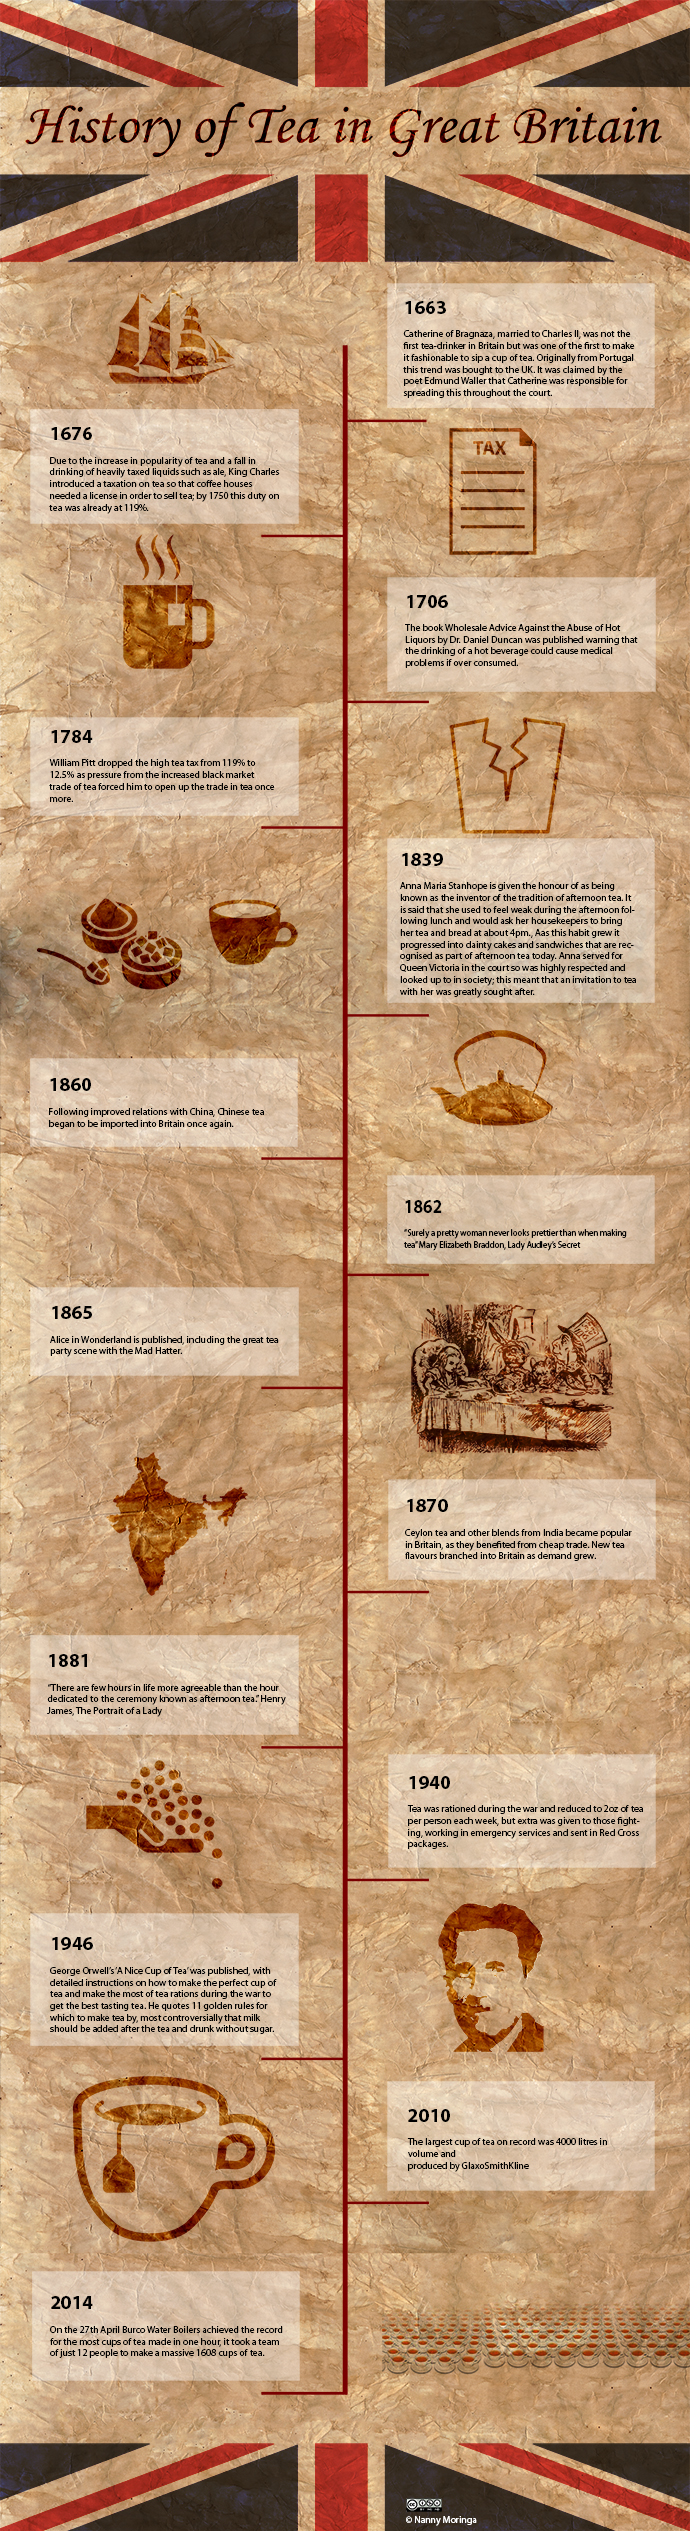 History of Tea in Great Britian